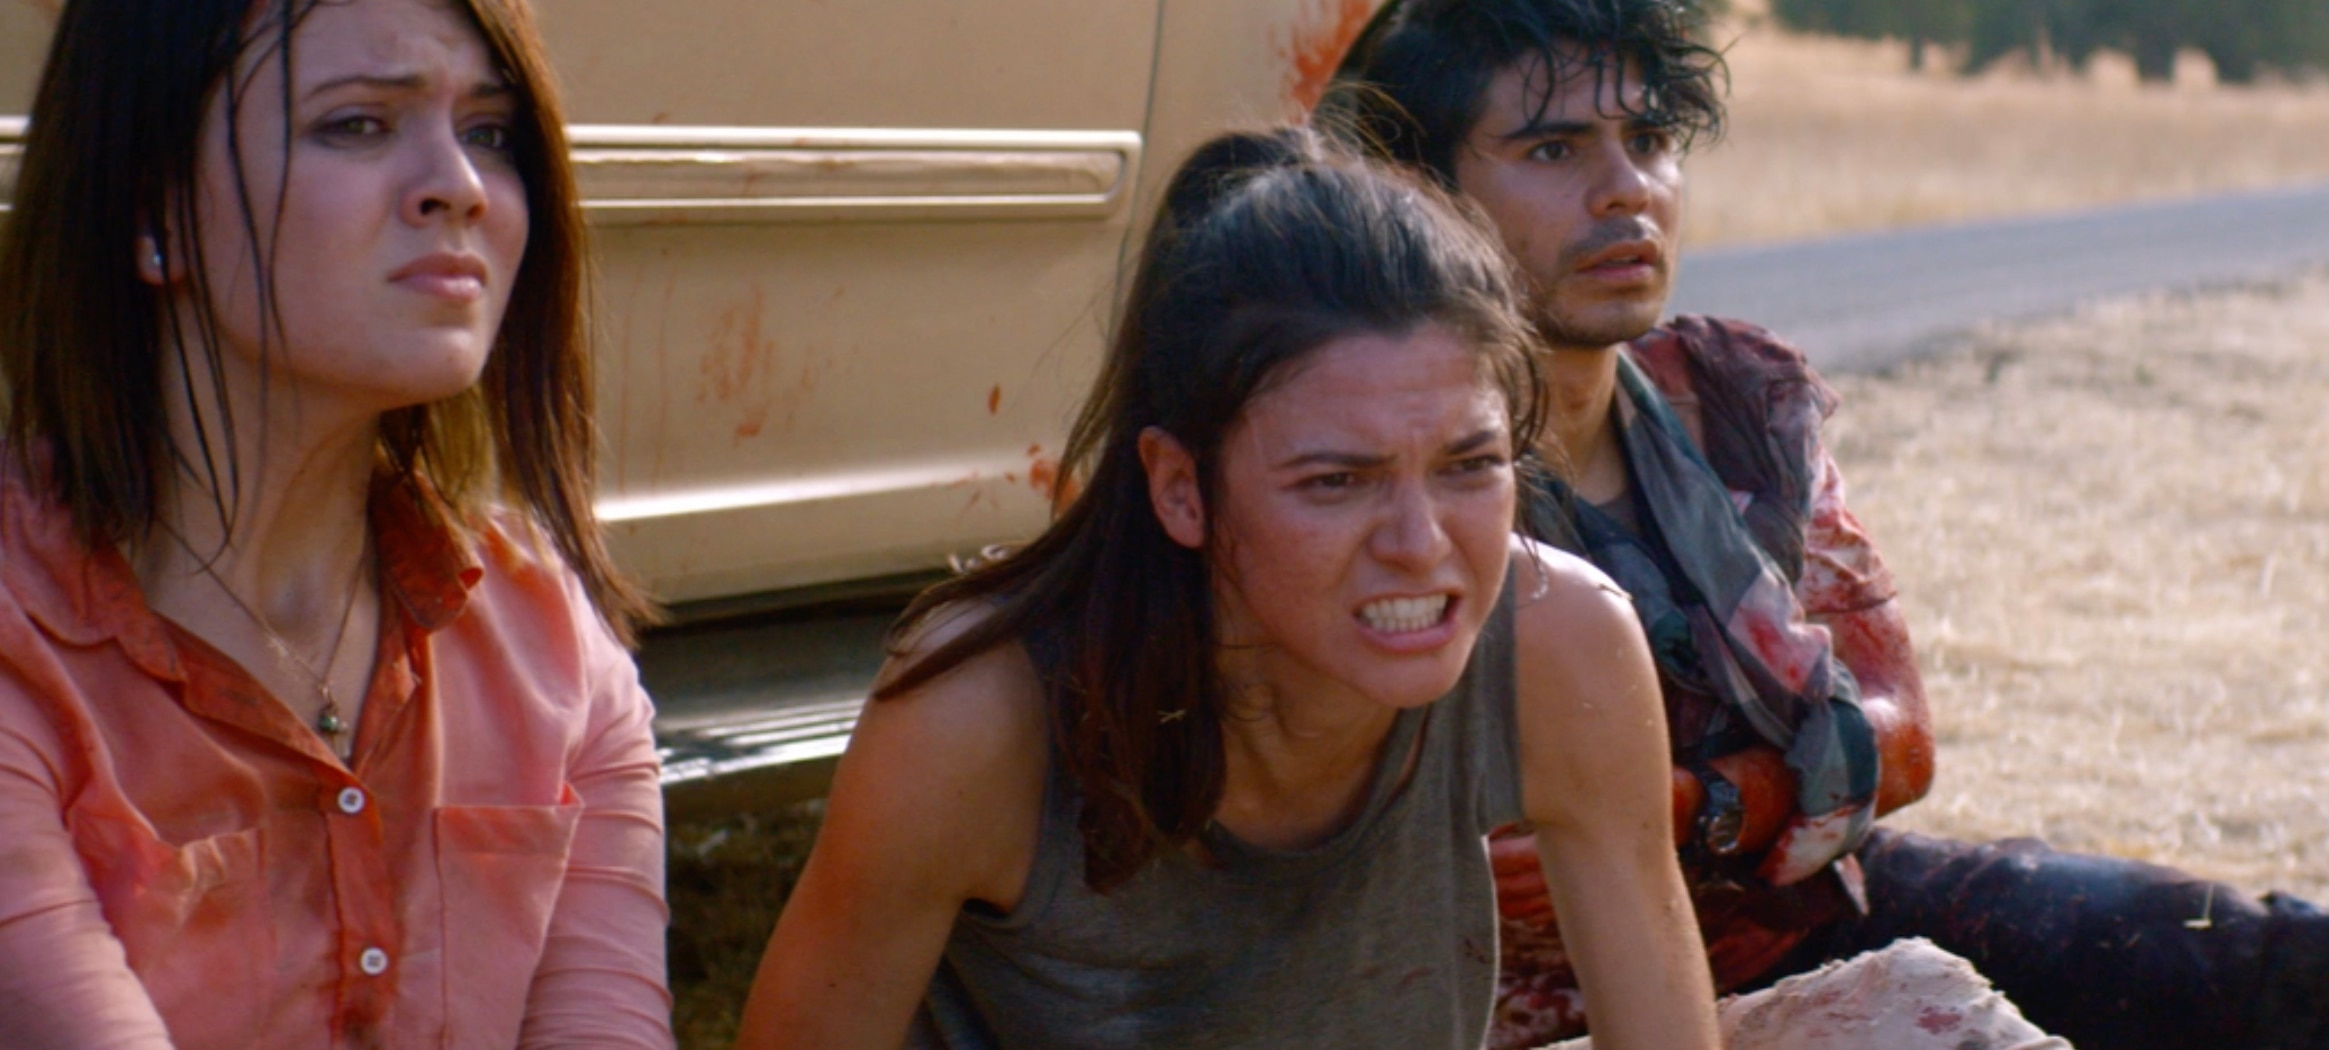 Downrange 04 - Downrange TIFF Review: Ryuhei Kitamura's Latest Is an Overly Long But Entertaining Gorefest